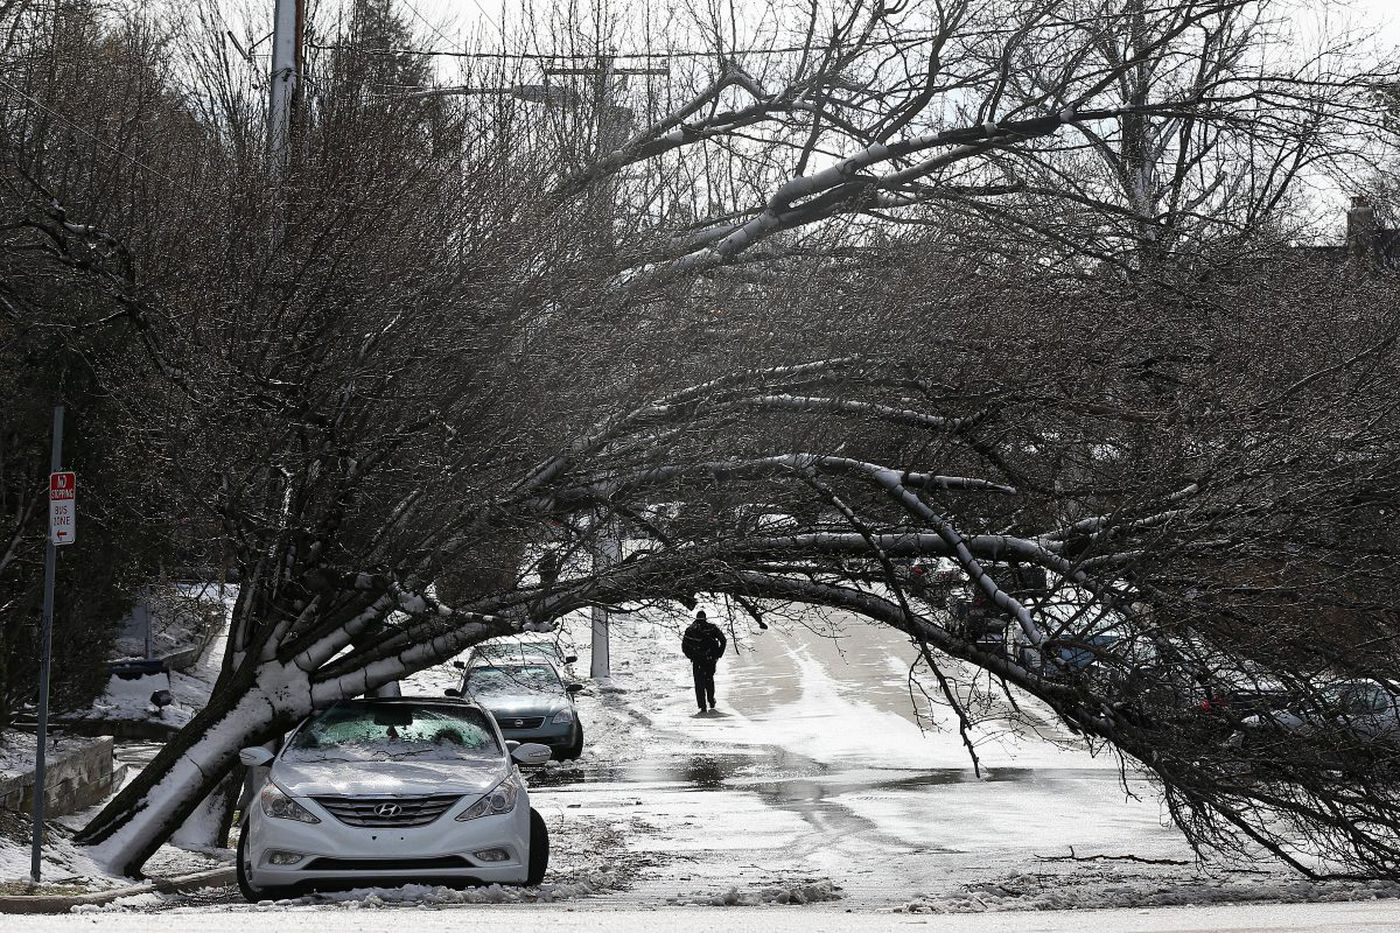 Nor'easter tore through the Pa. suburbs, downing trees, causing havoc as many residents remain without power